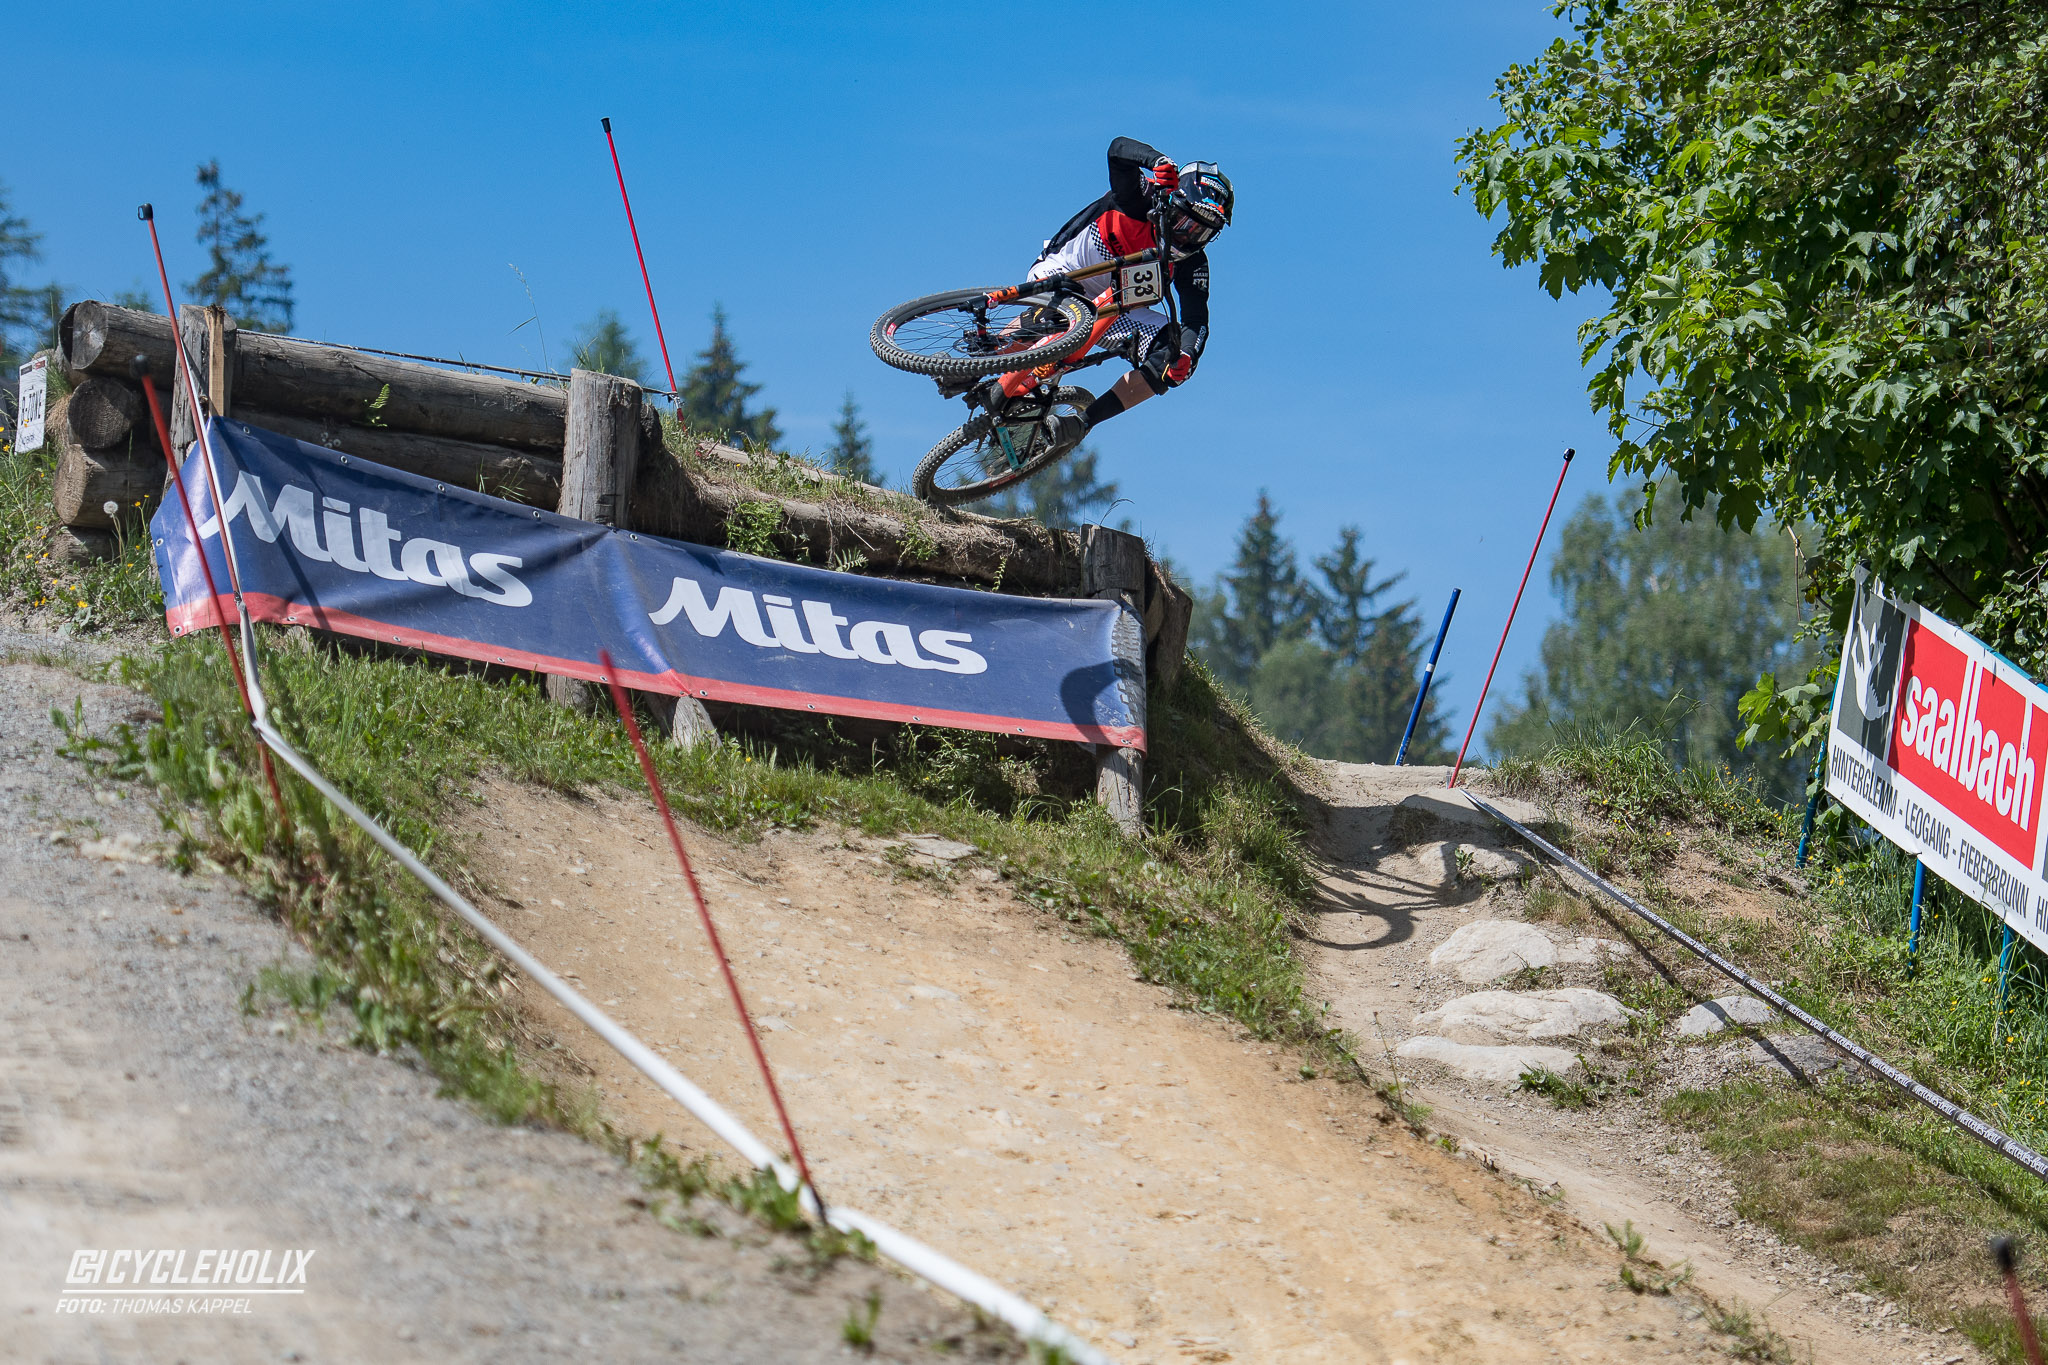 2019 Downhill Worldcup Leogang Finale Action A 1